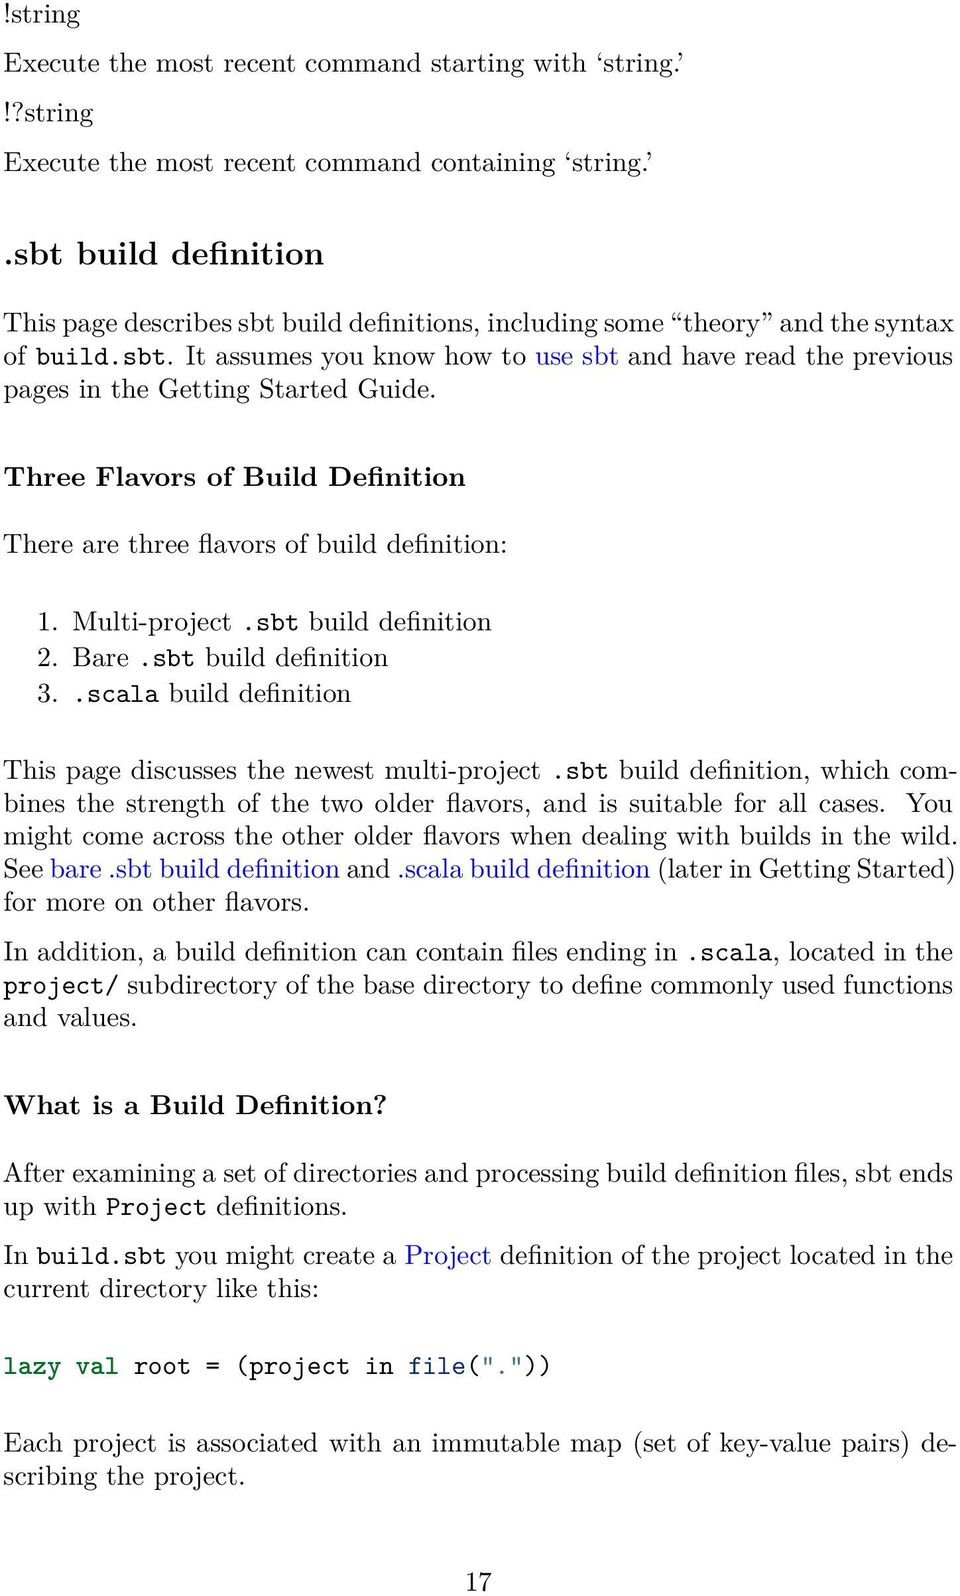 Three Flavors of Build Definition There are three flavors of build definition: 1. Multi-project.sbt build definition 2. Bare.sbt build definition 3.